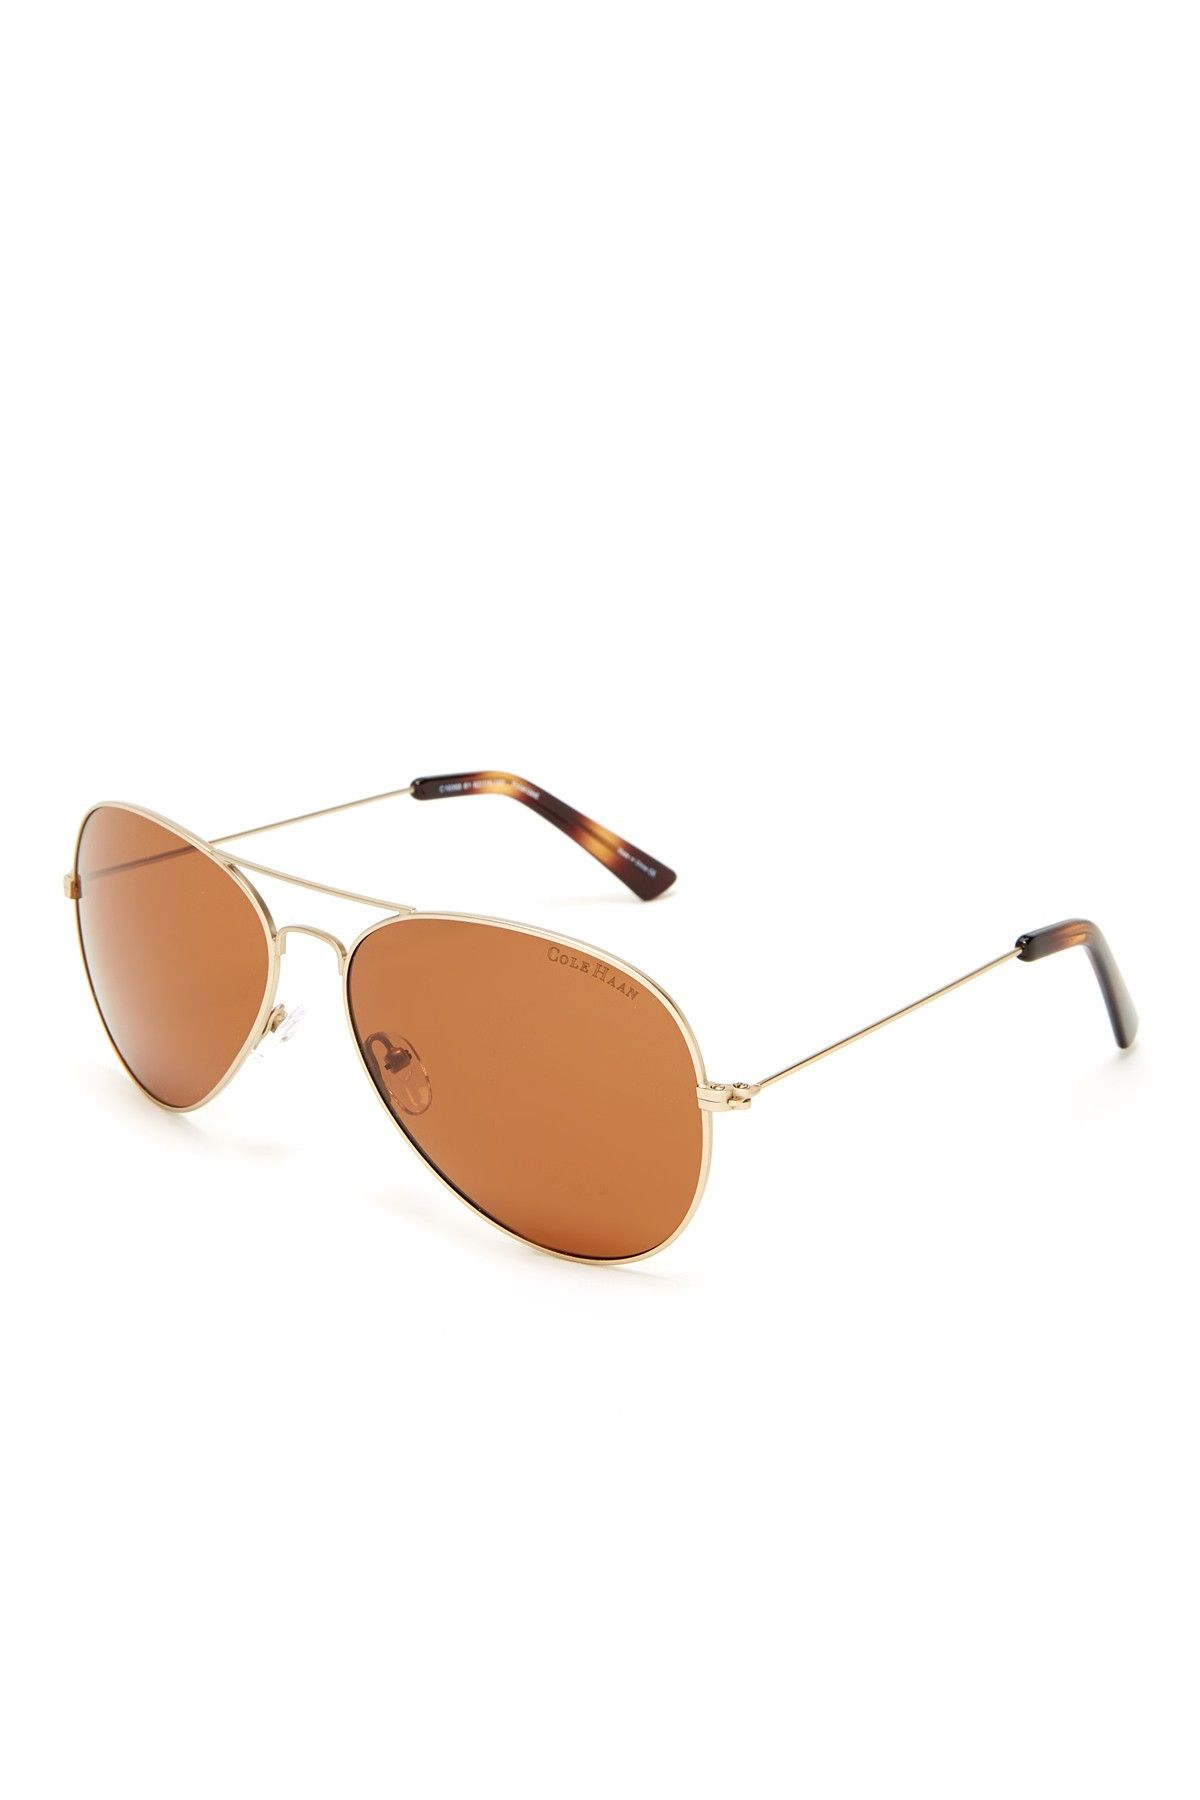 f0f9f9cb70 Cole Haan - Women s Aviator Polarized Sunglasses at Nordstrom Rack. Free  Shipping on orders over  100.